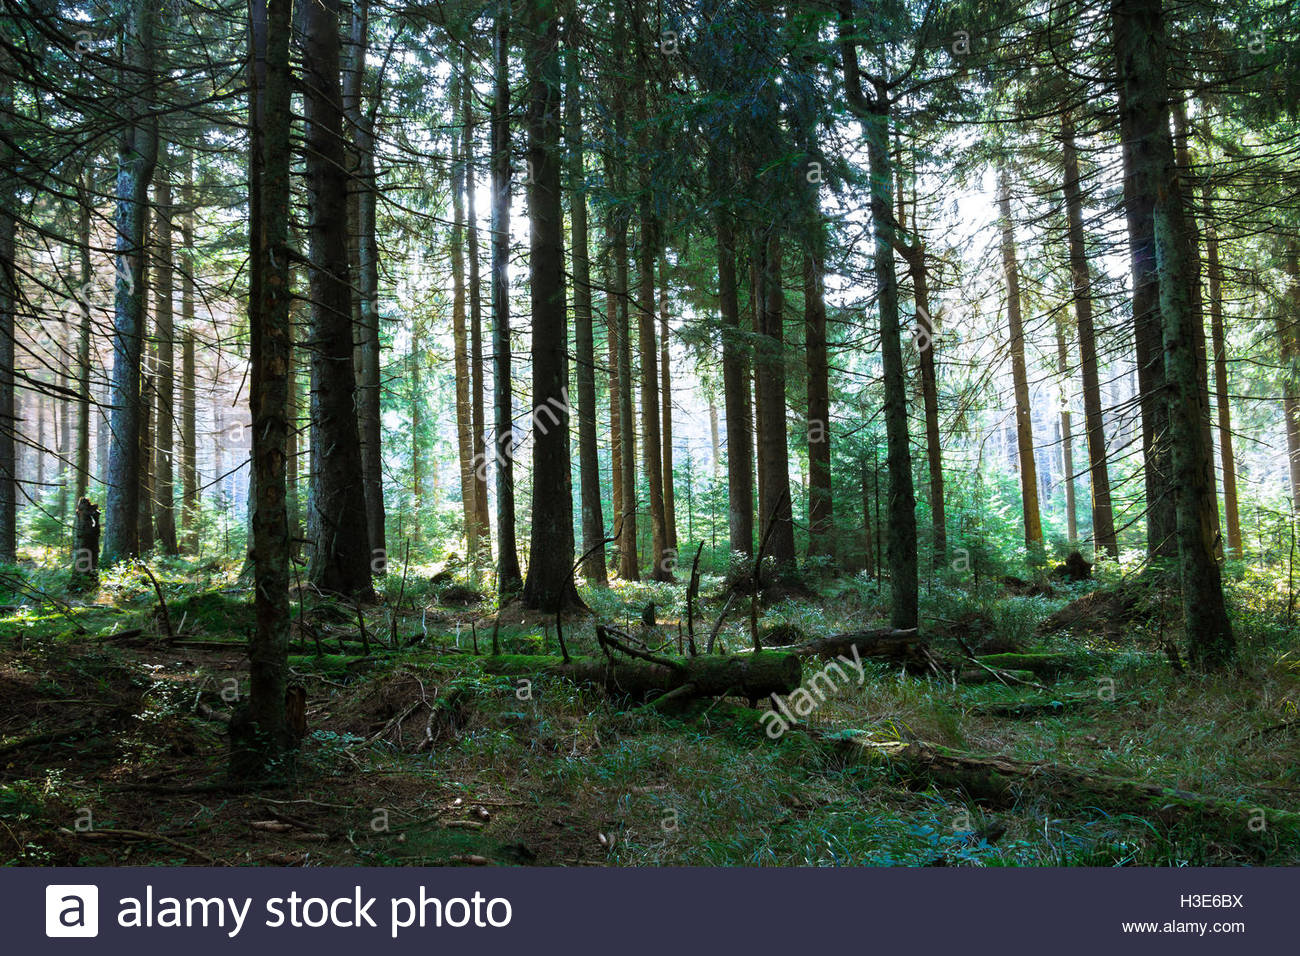 German National Park Harz Germany green forest sunlight peacefulness forestry woodland landscape abstract nature, - Stock Image